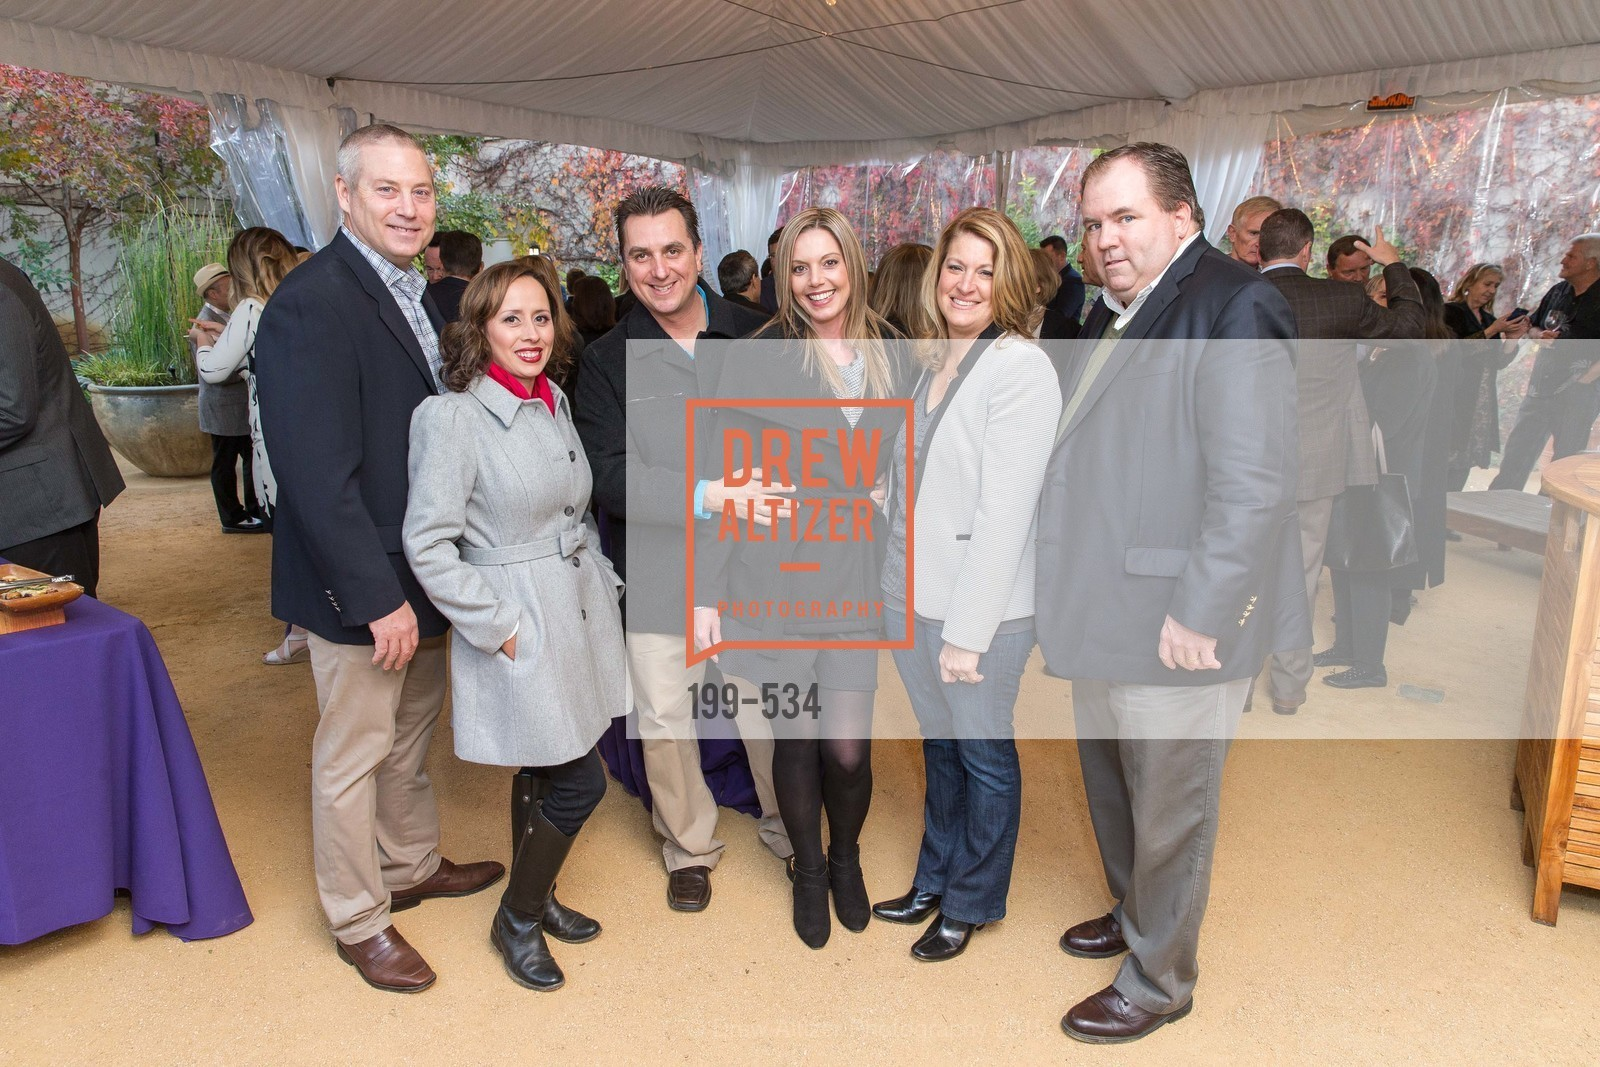 Timothy Hay, Maria Hay, Christian Sandoval, Melanie Sandoval, Brit Kelleher, Brian Kelleher, Perfecting Pairings - Food, Wine and Stories, Chateau St Jean, Kenwood, November 14th, 2015,Drew Altizer, Drew Altizer Photography, full-service agency, private events, San Francisco photographer, photographer california